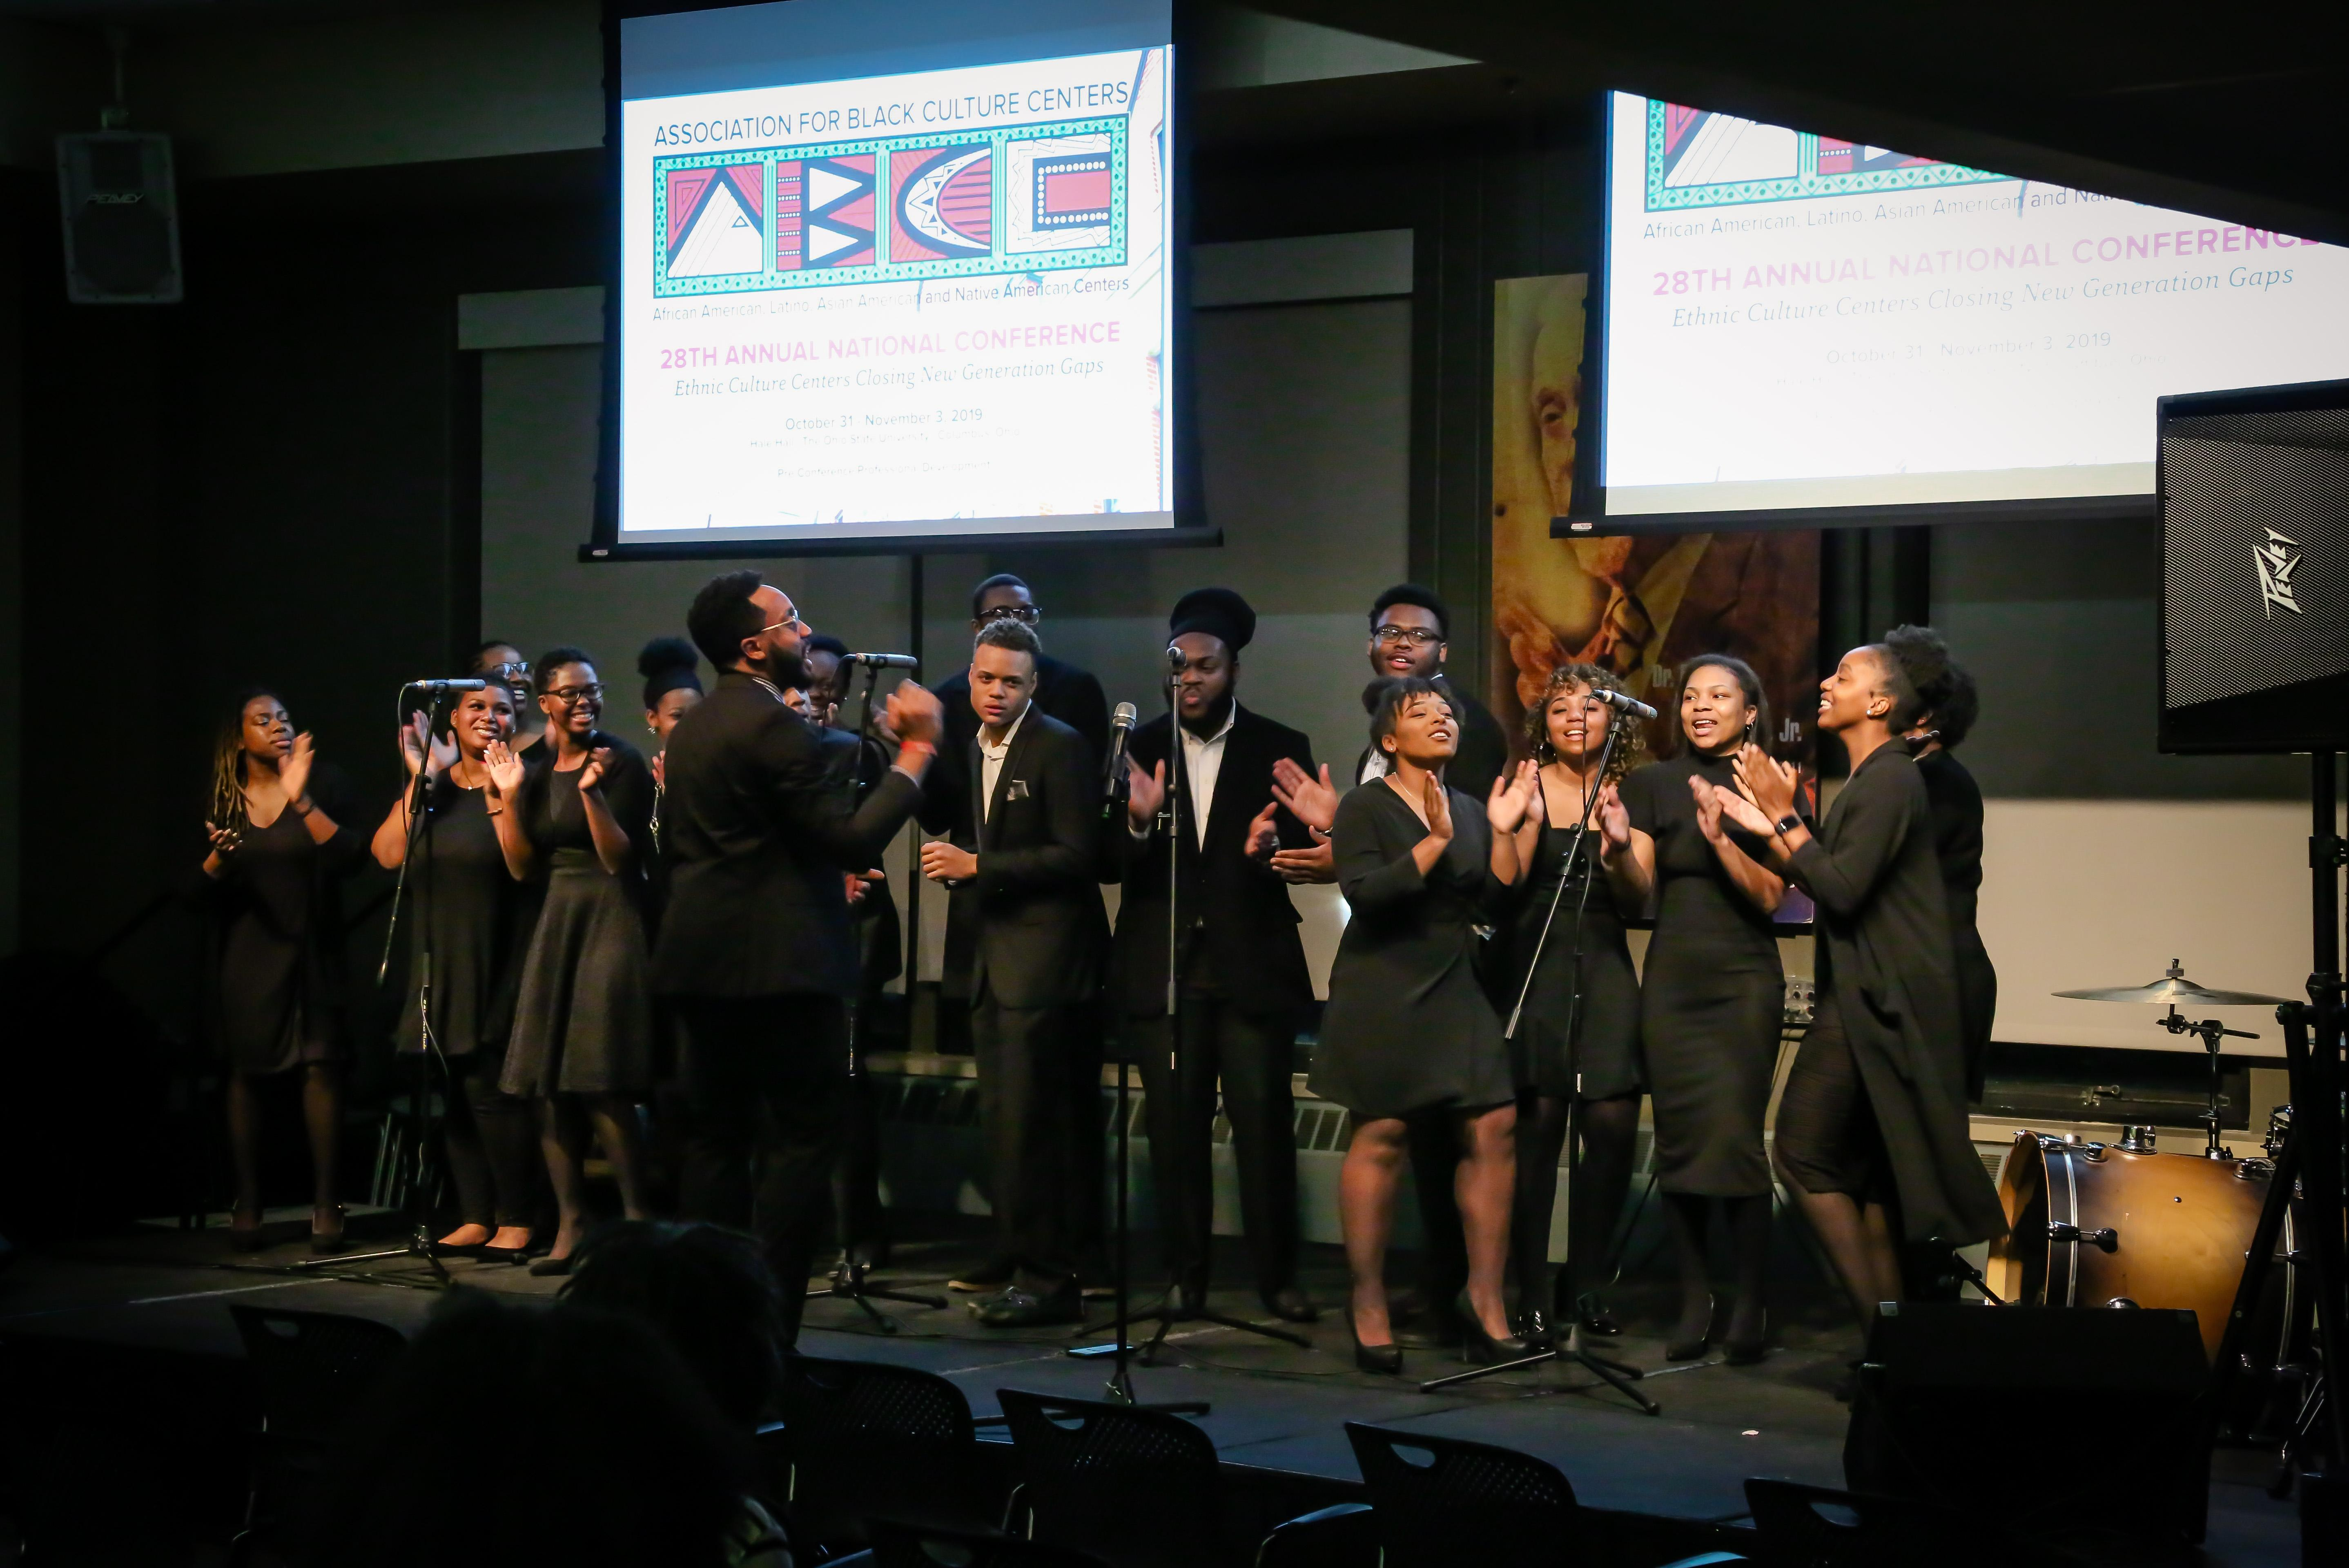 African American Voices at ABCC conference